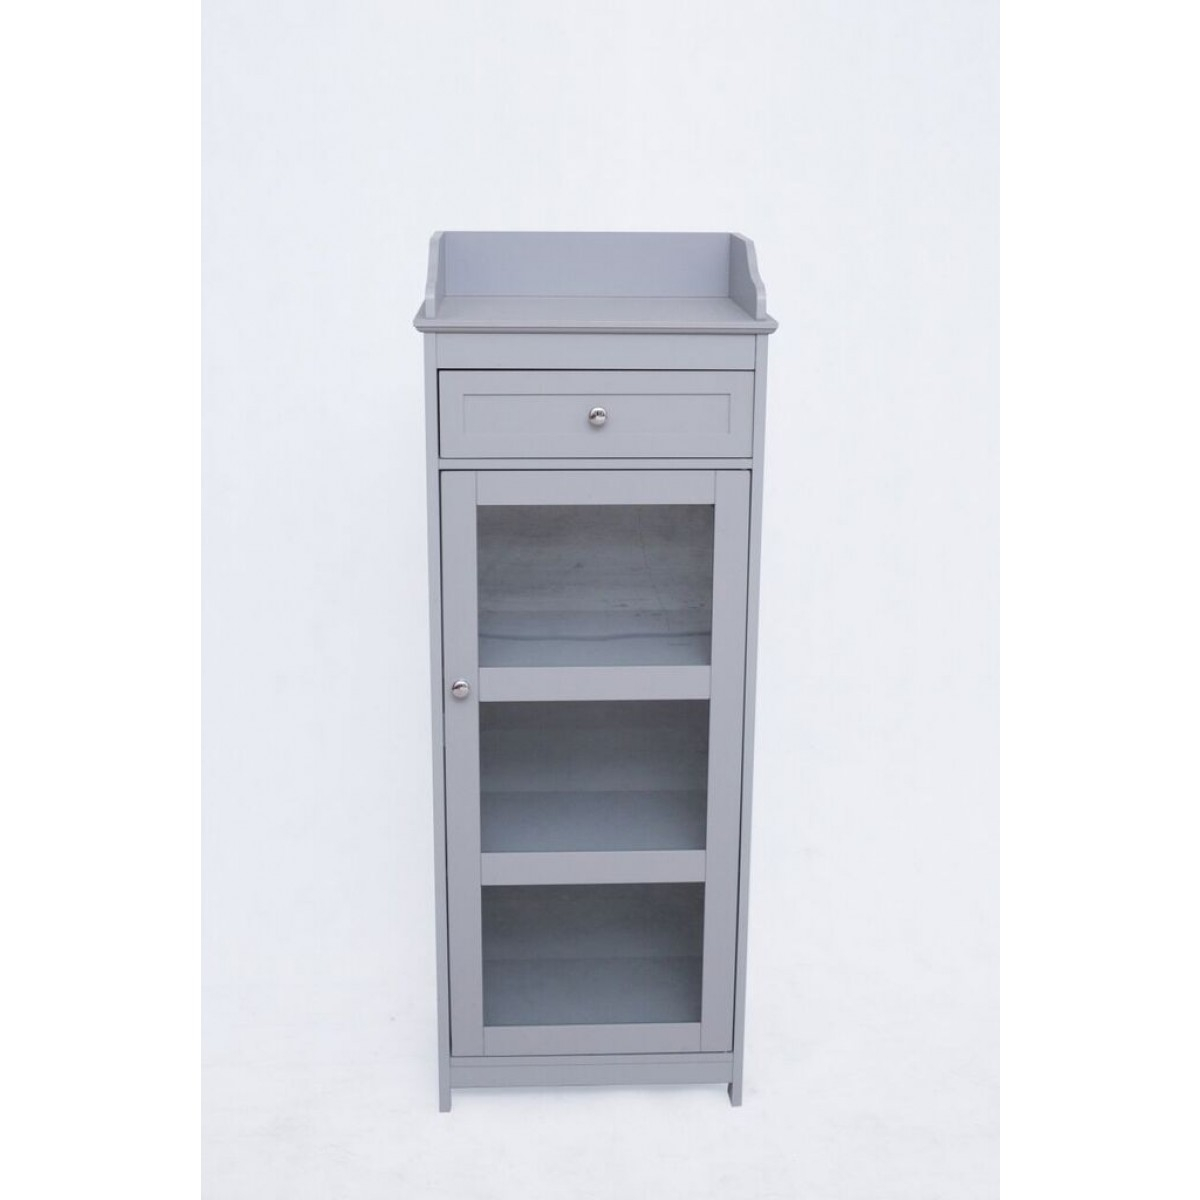 Lpd Alaska Glass Front Bathroom Storage Cabinet Grey Or White in measurements 1200 X 1200